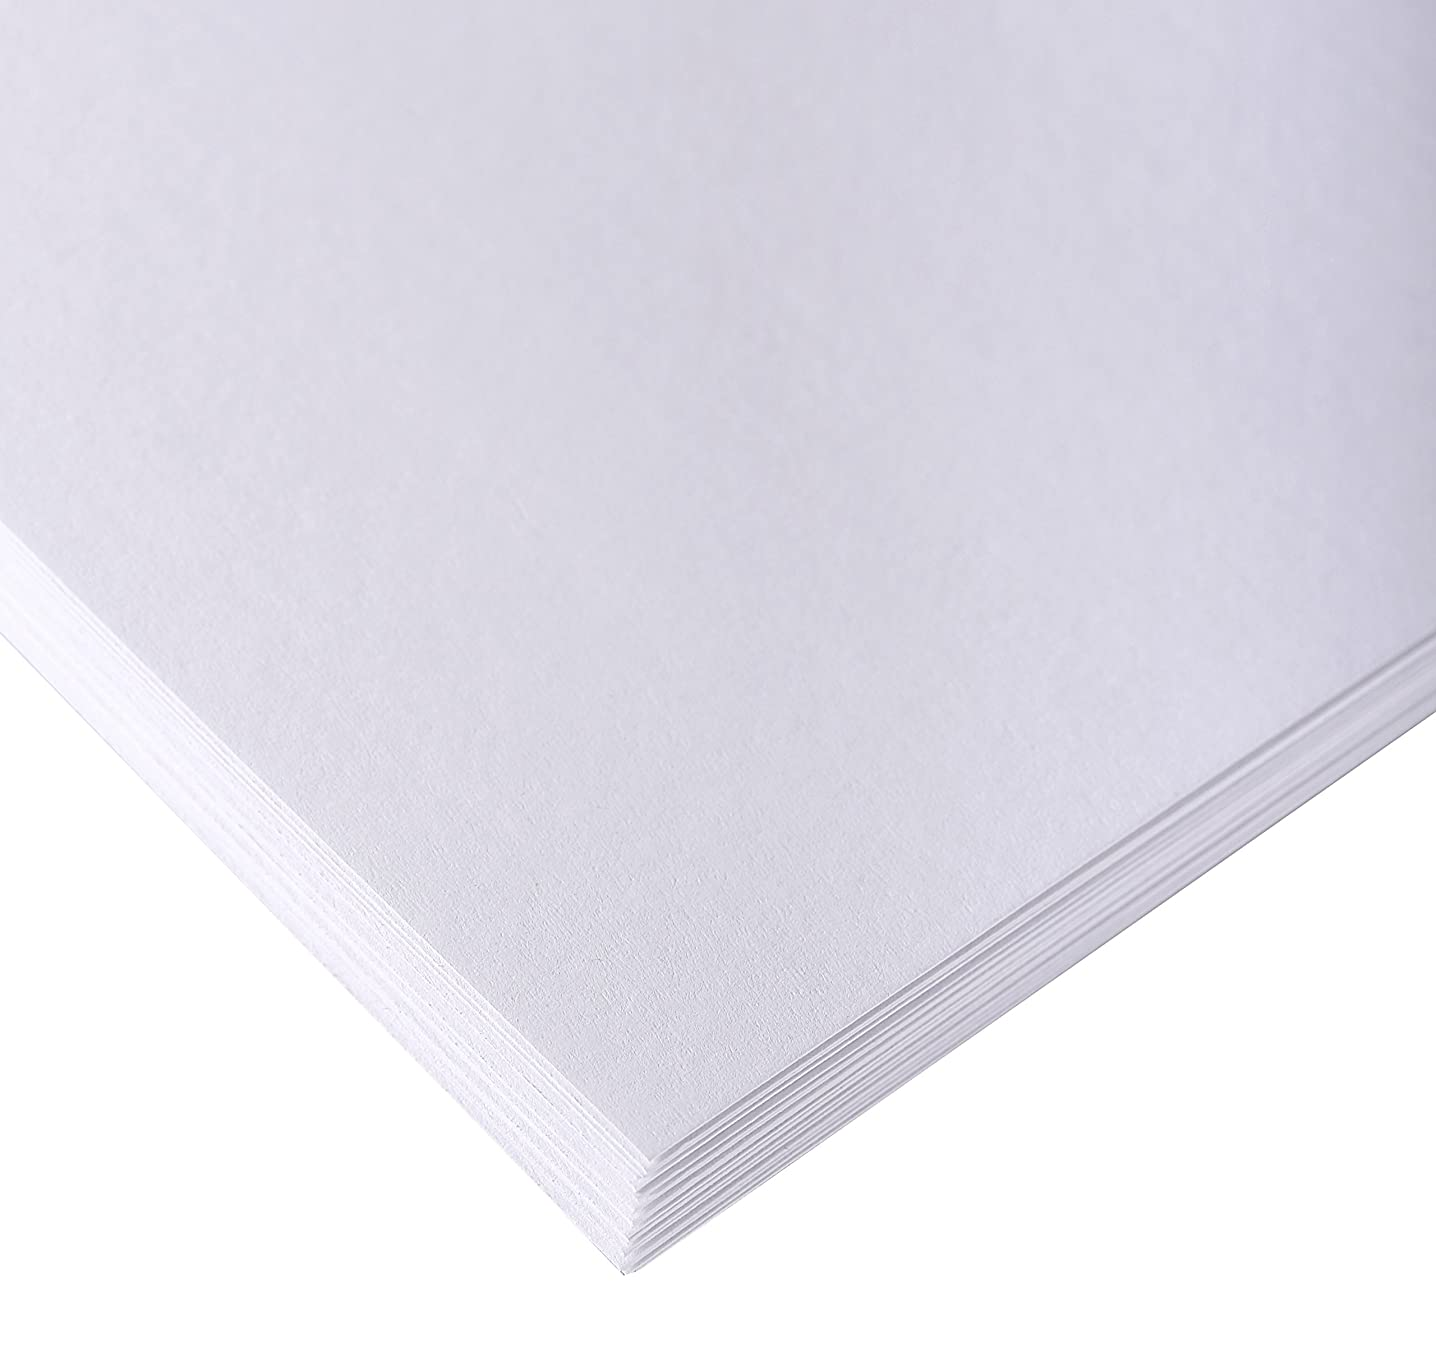 Clairefontaine 50 x 65 cm White Drawing Sketch Paper, 160 g, Pack 250 Sheets pwdepfxenry850